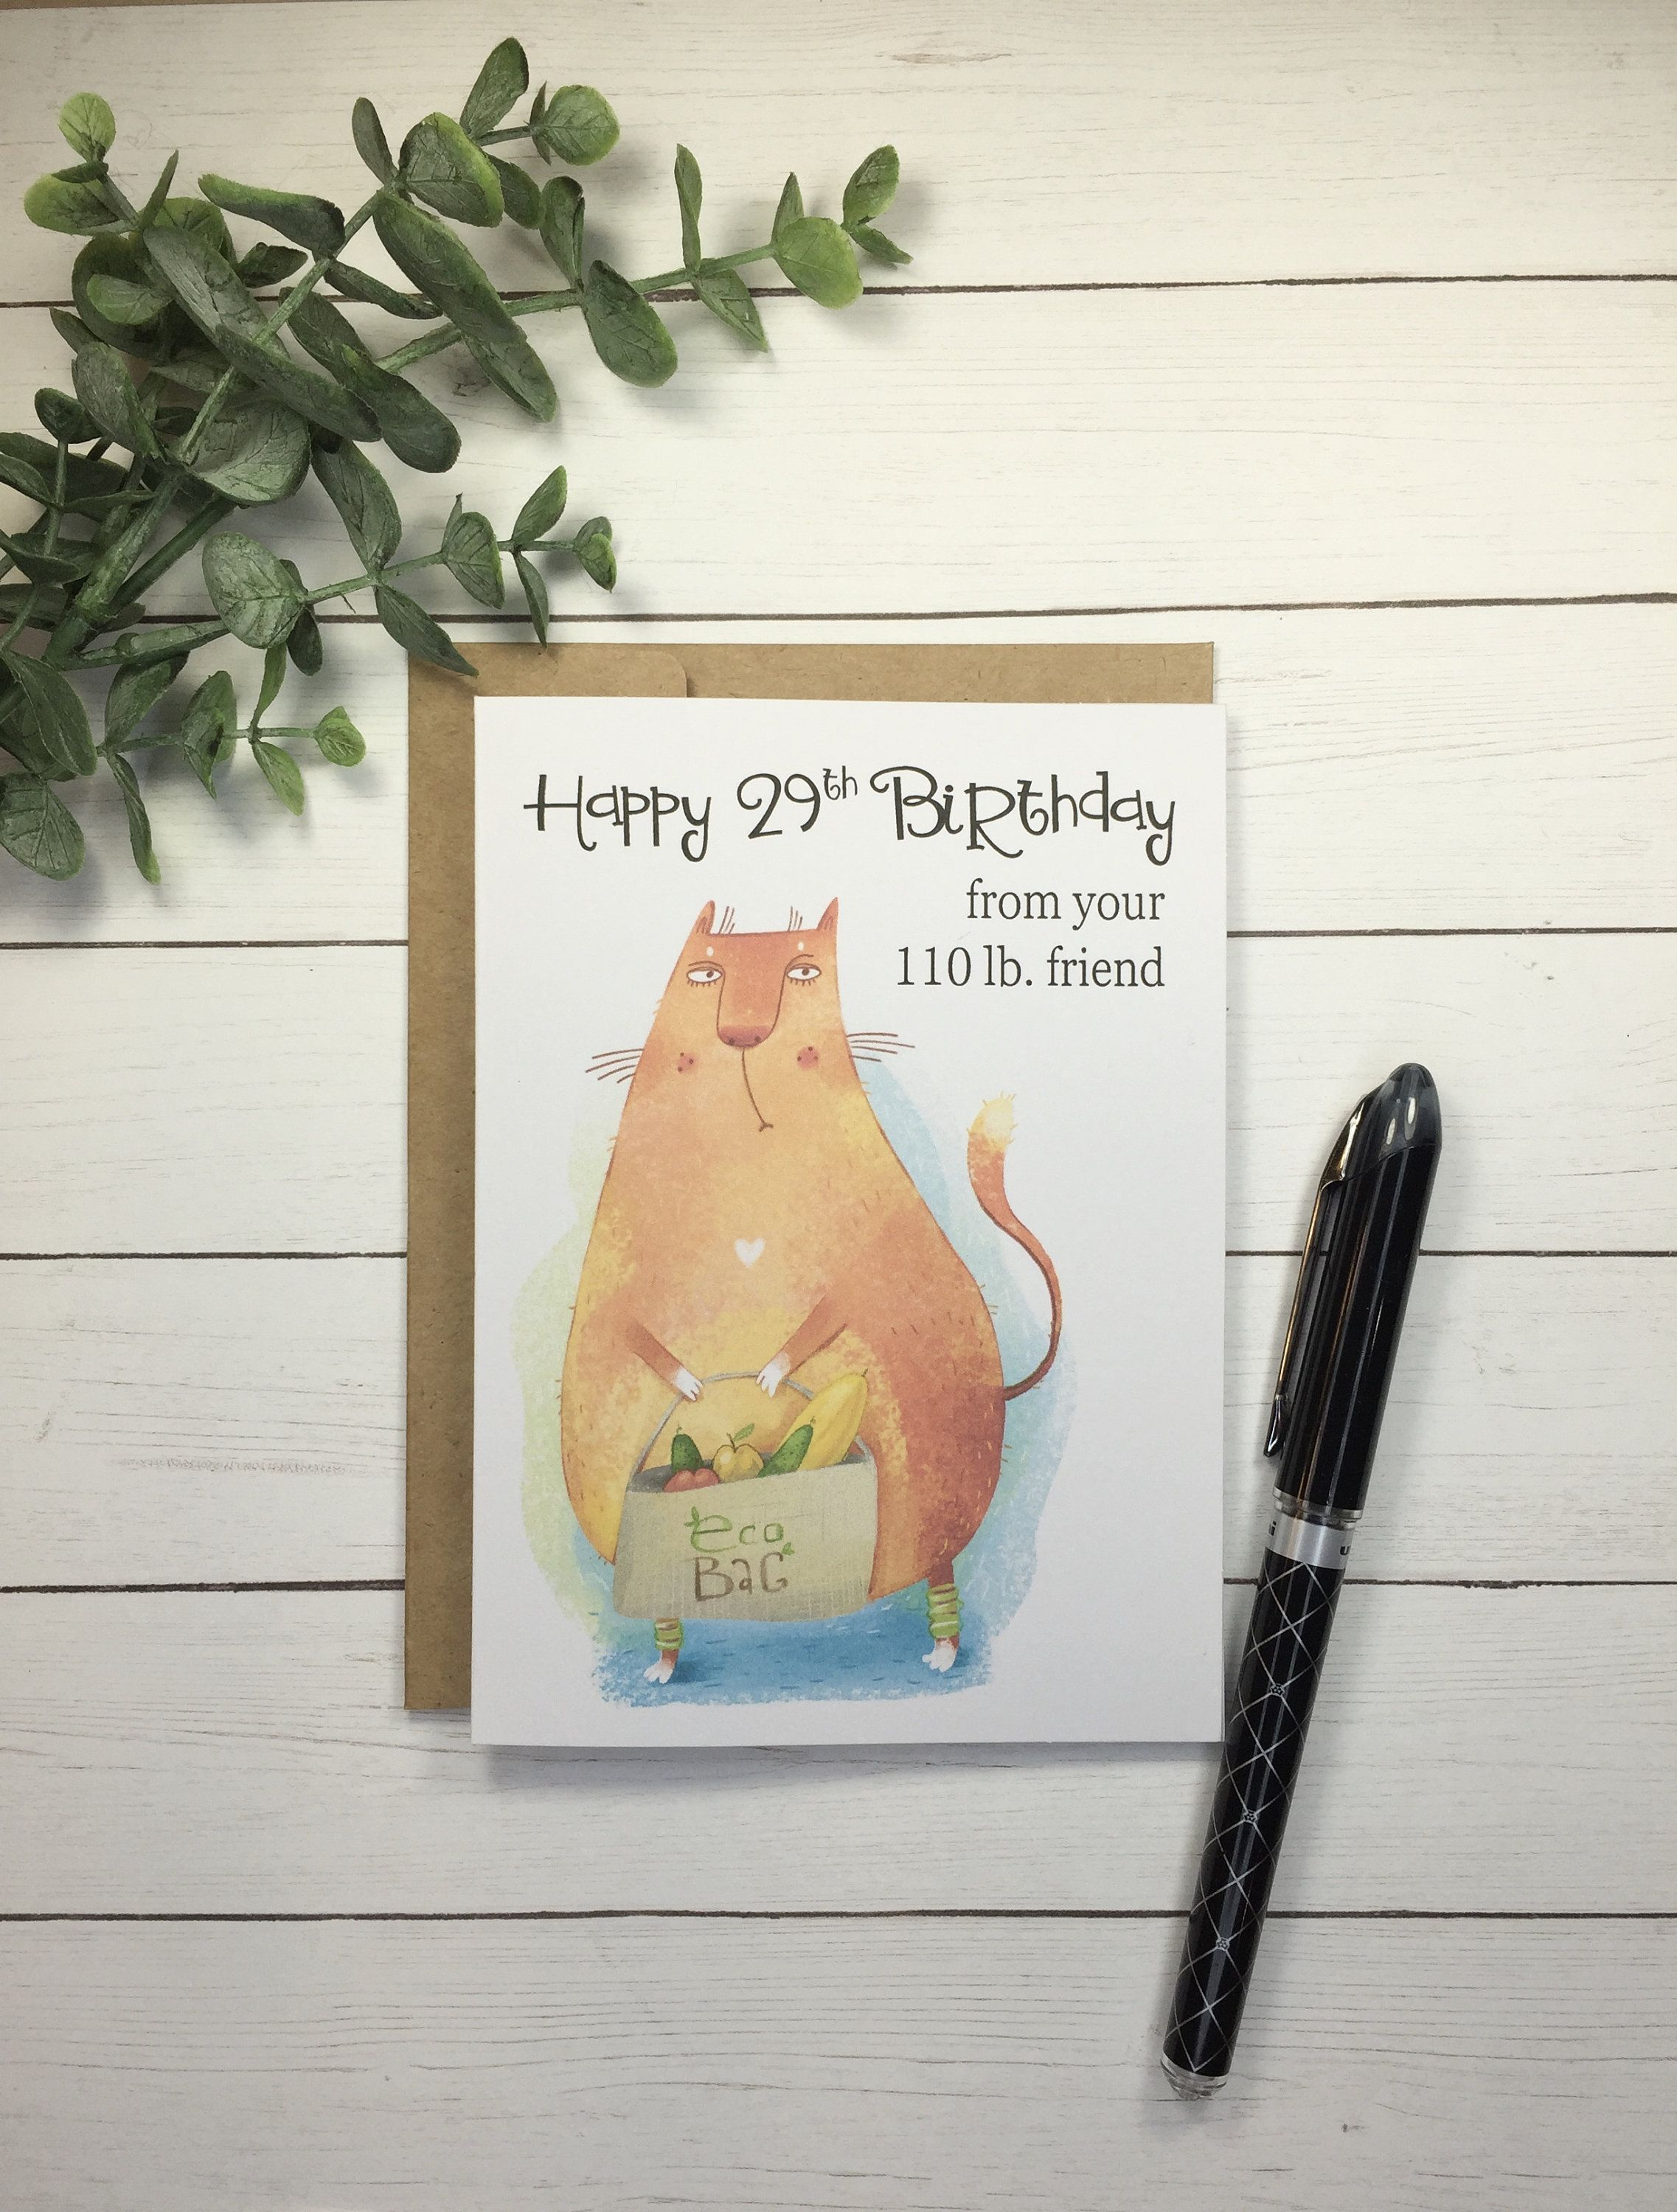 Funny Birthday Card Blank Or Your Message Inside Funny Vegan Etsy Funny Birthday Cards Birthday Cards Birthday Humor